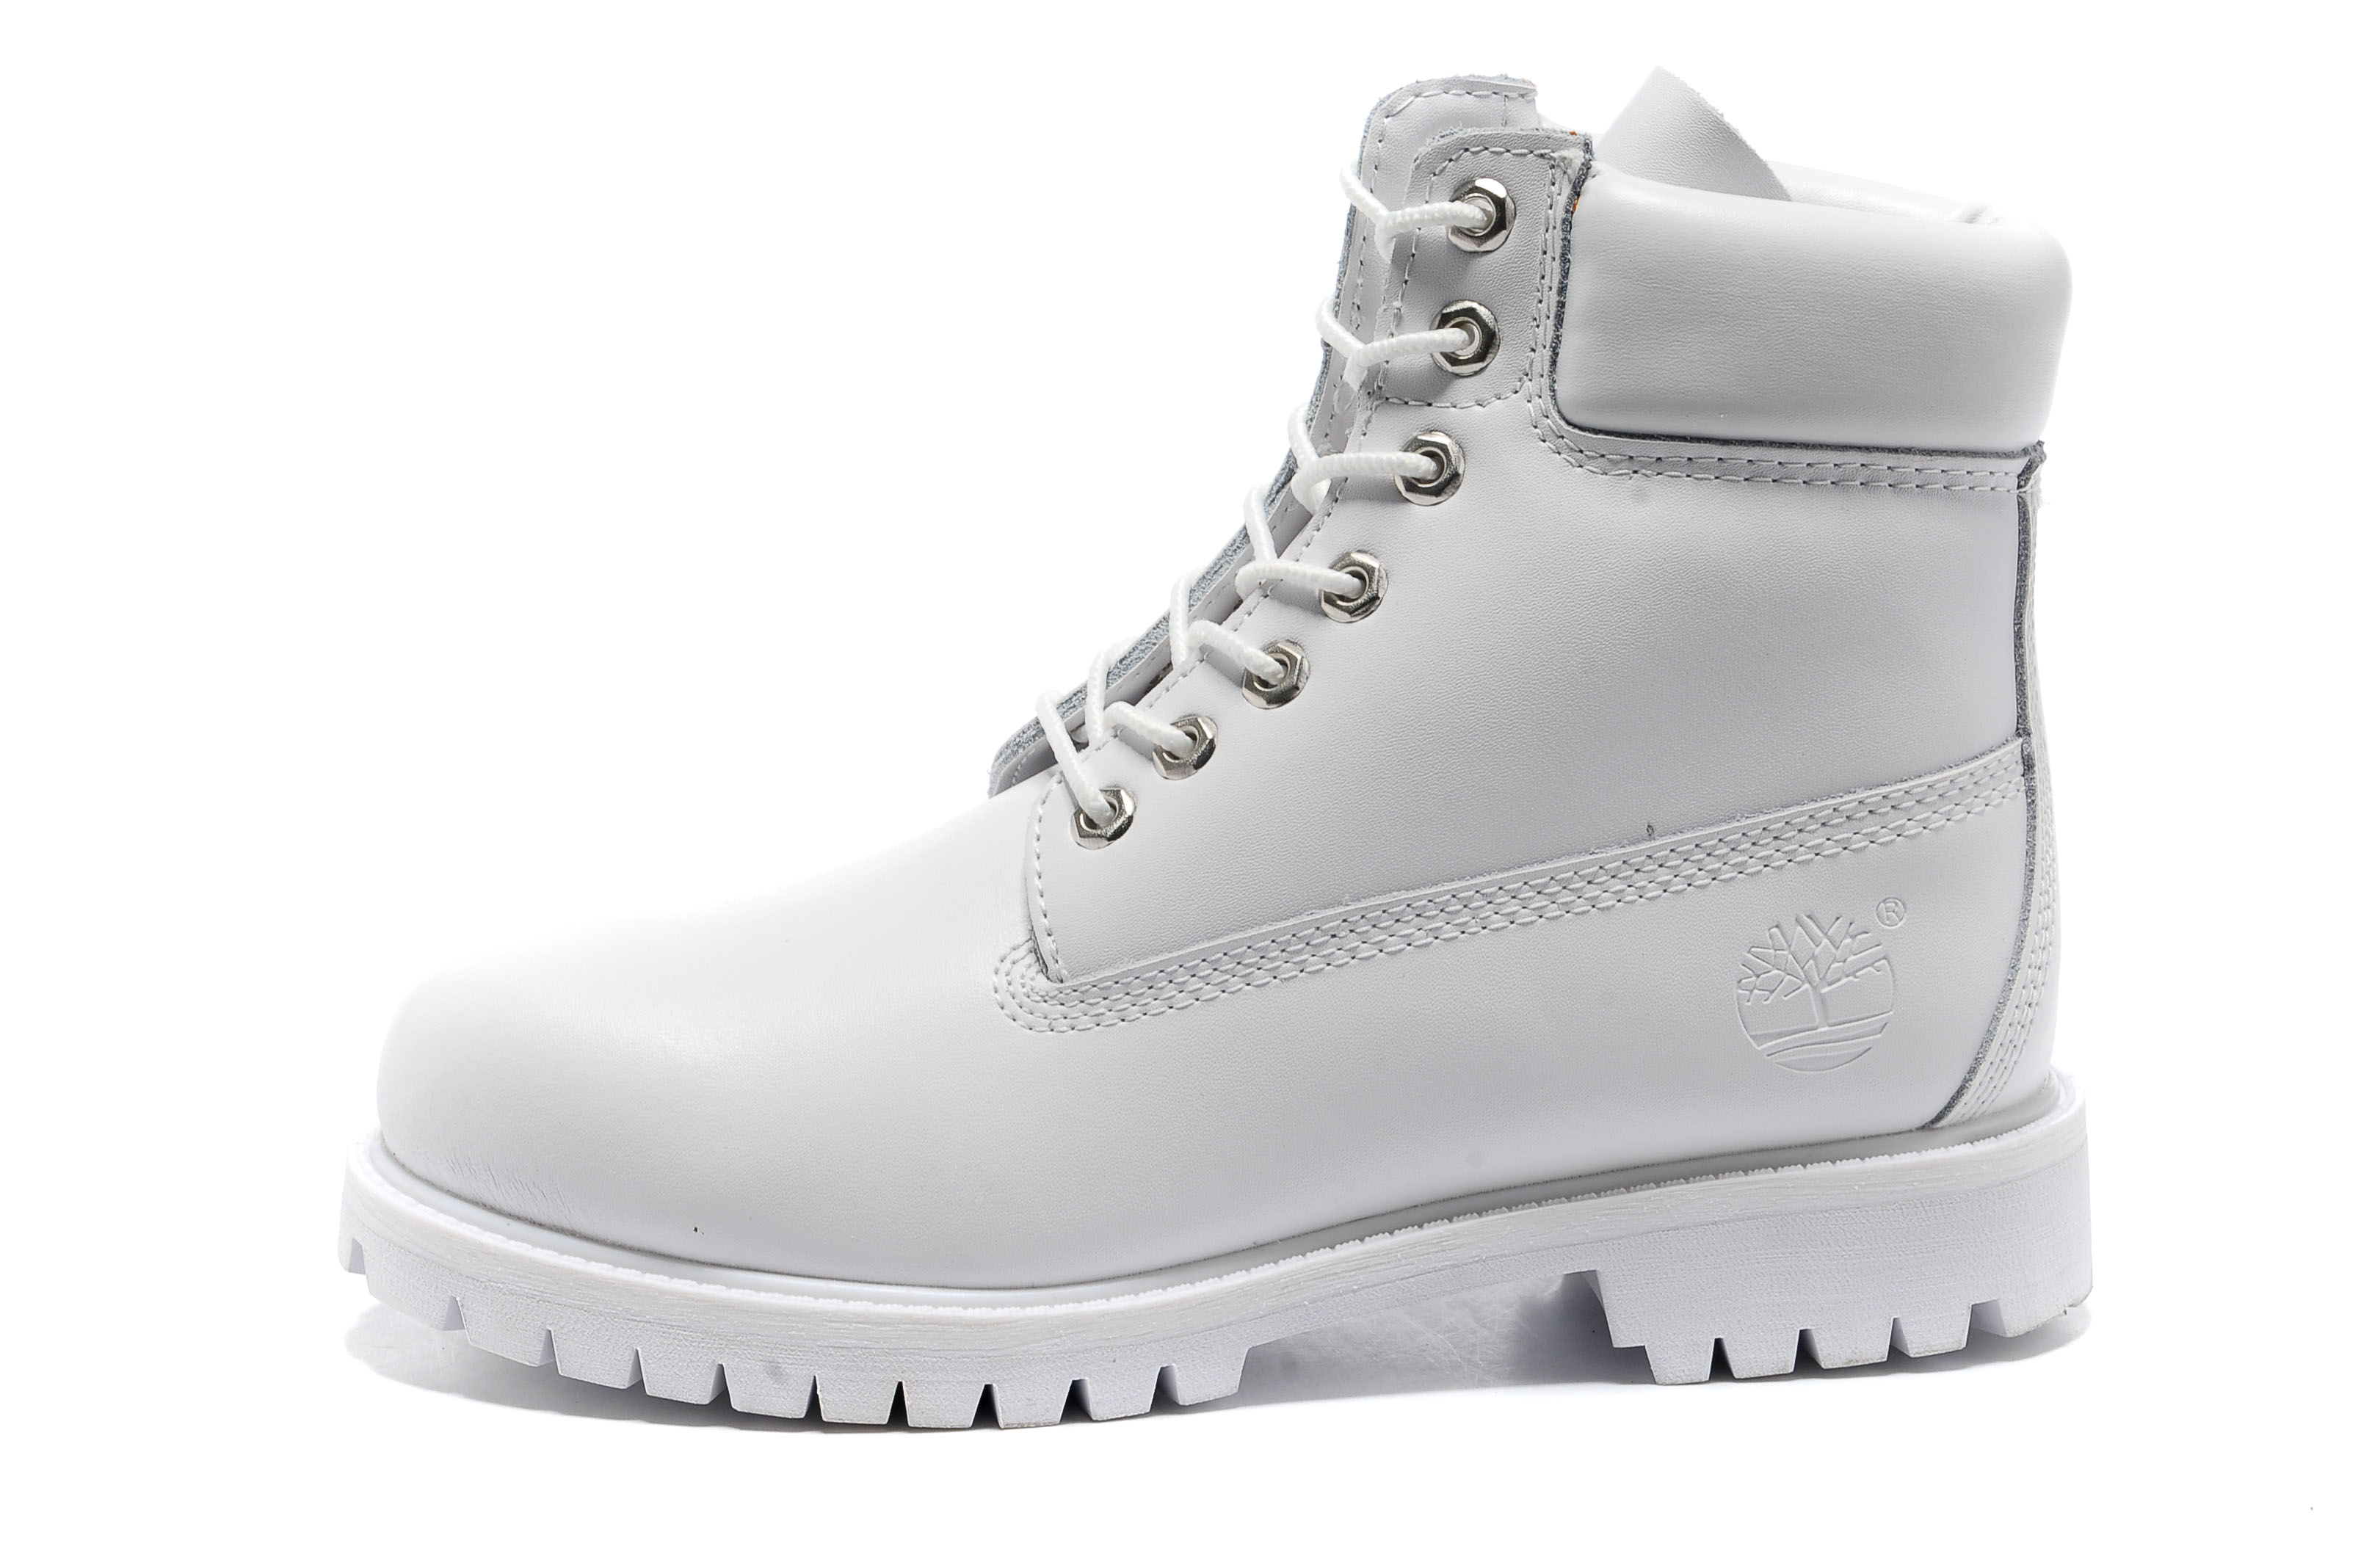 timberland mens 6 inch premium waterproof boots all white